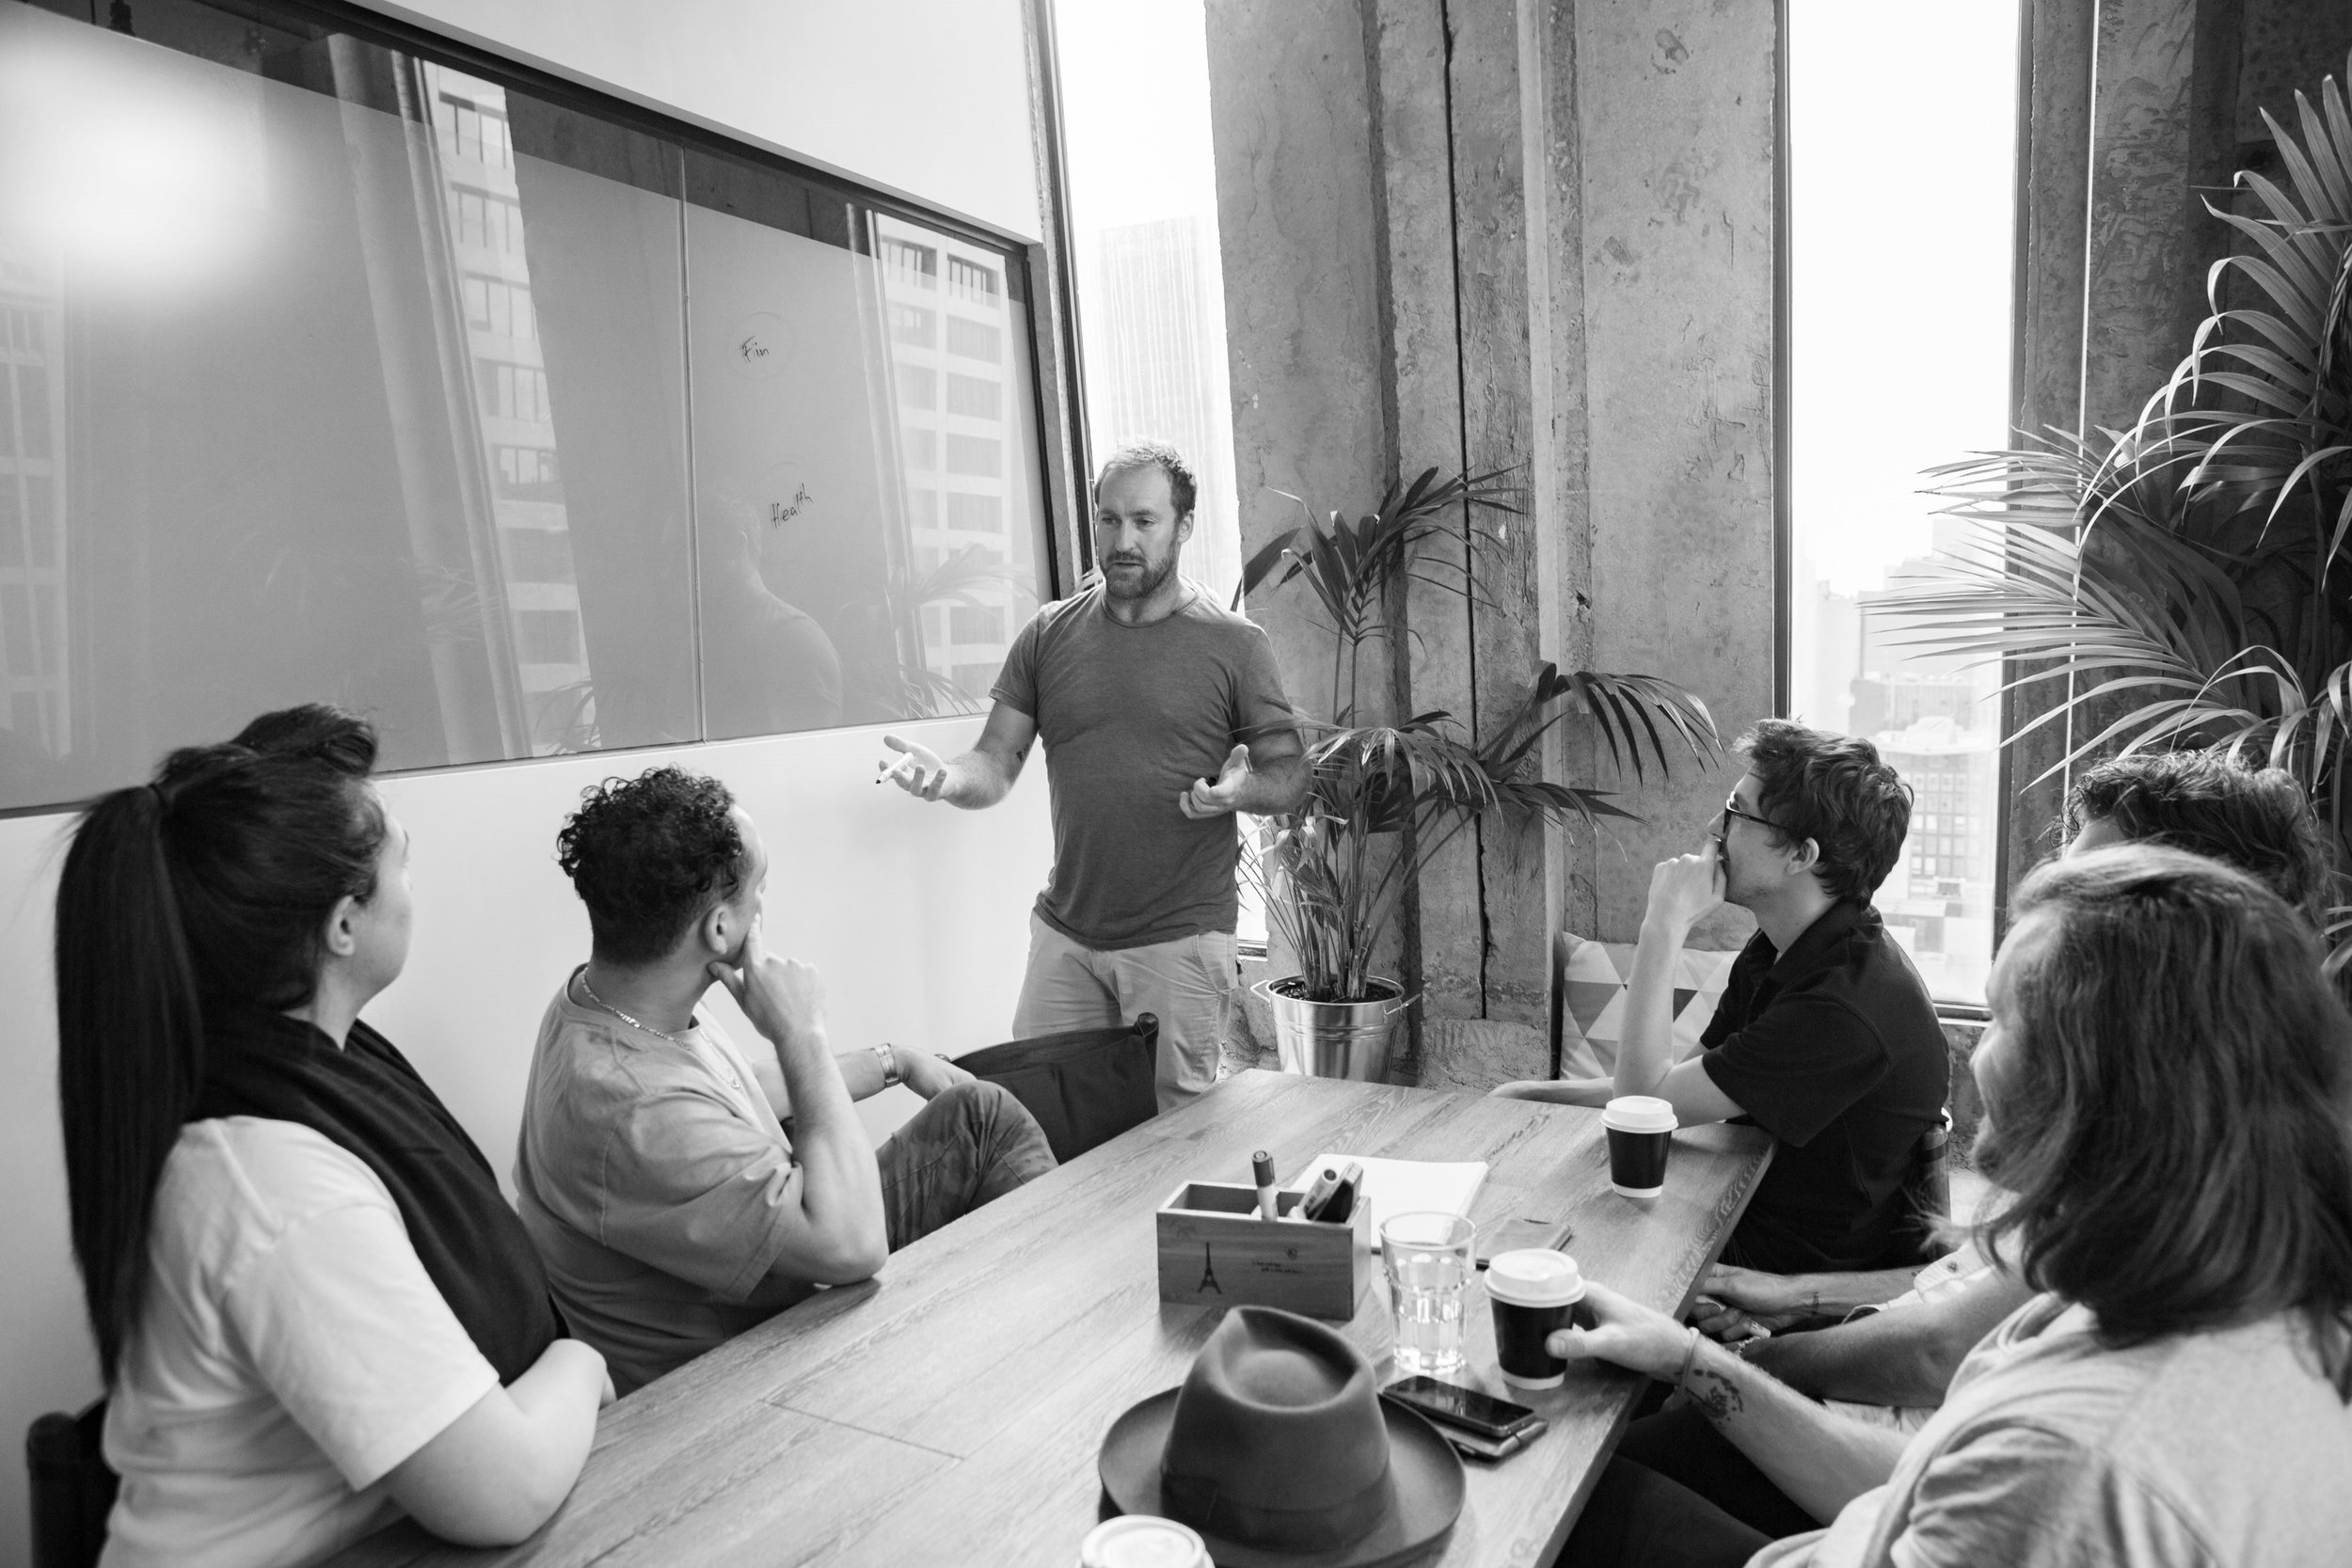 WORKSHOPS - Group Sessions to Meet Your Needs